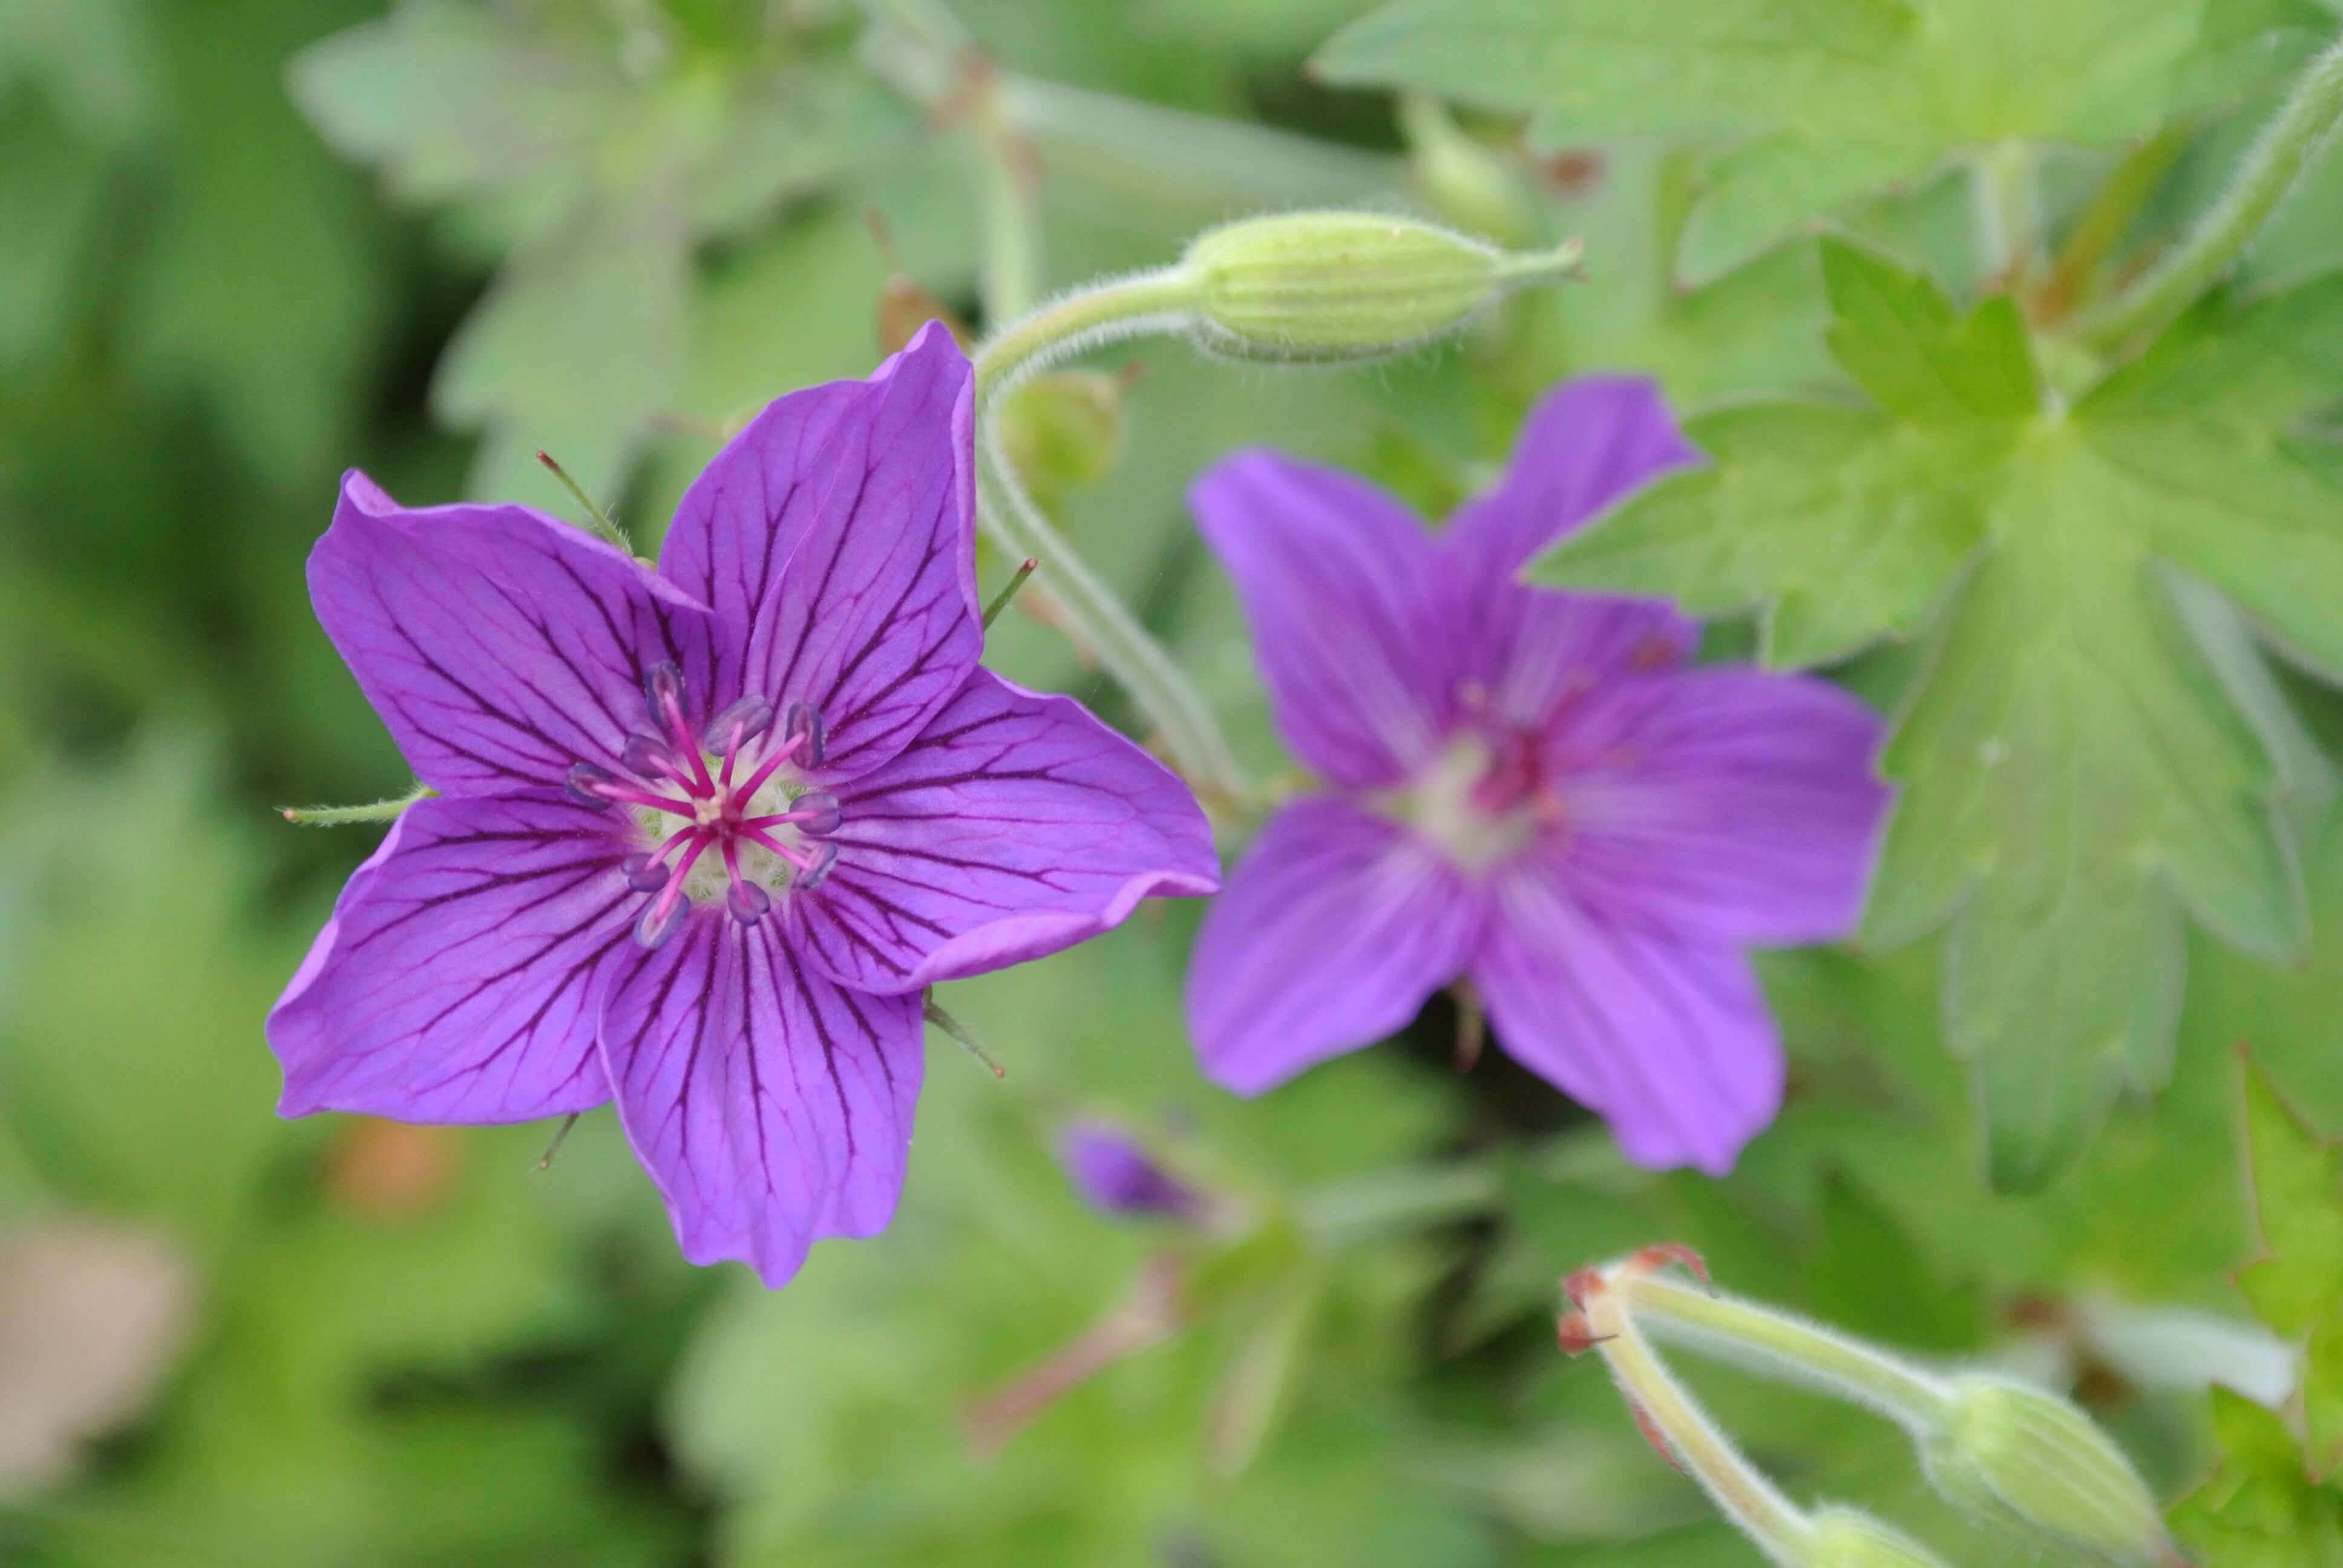 BMV Fragrances offers best quality Geranium Oil including 100% Pure & Natural Geranium Egyptian Pure, Zdravetz Oil, Chinese Geranium, Egyptian Geranium that are used in deodorant and for treating acne, bruises, burns, cuts.